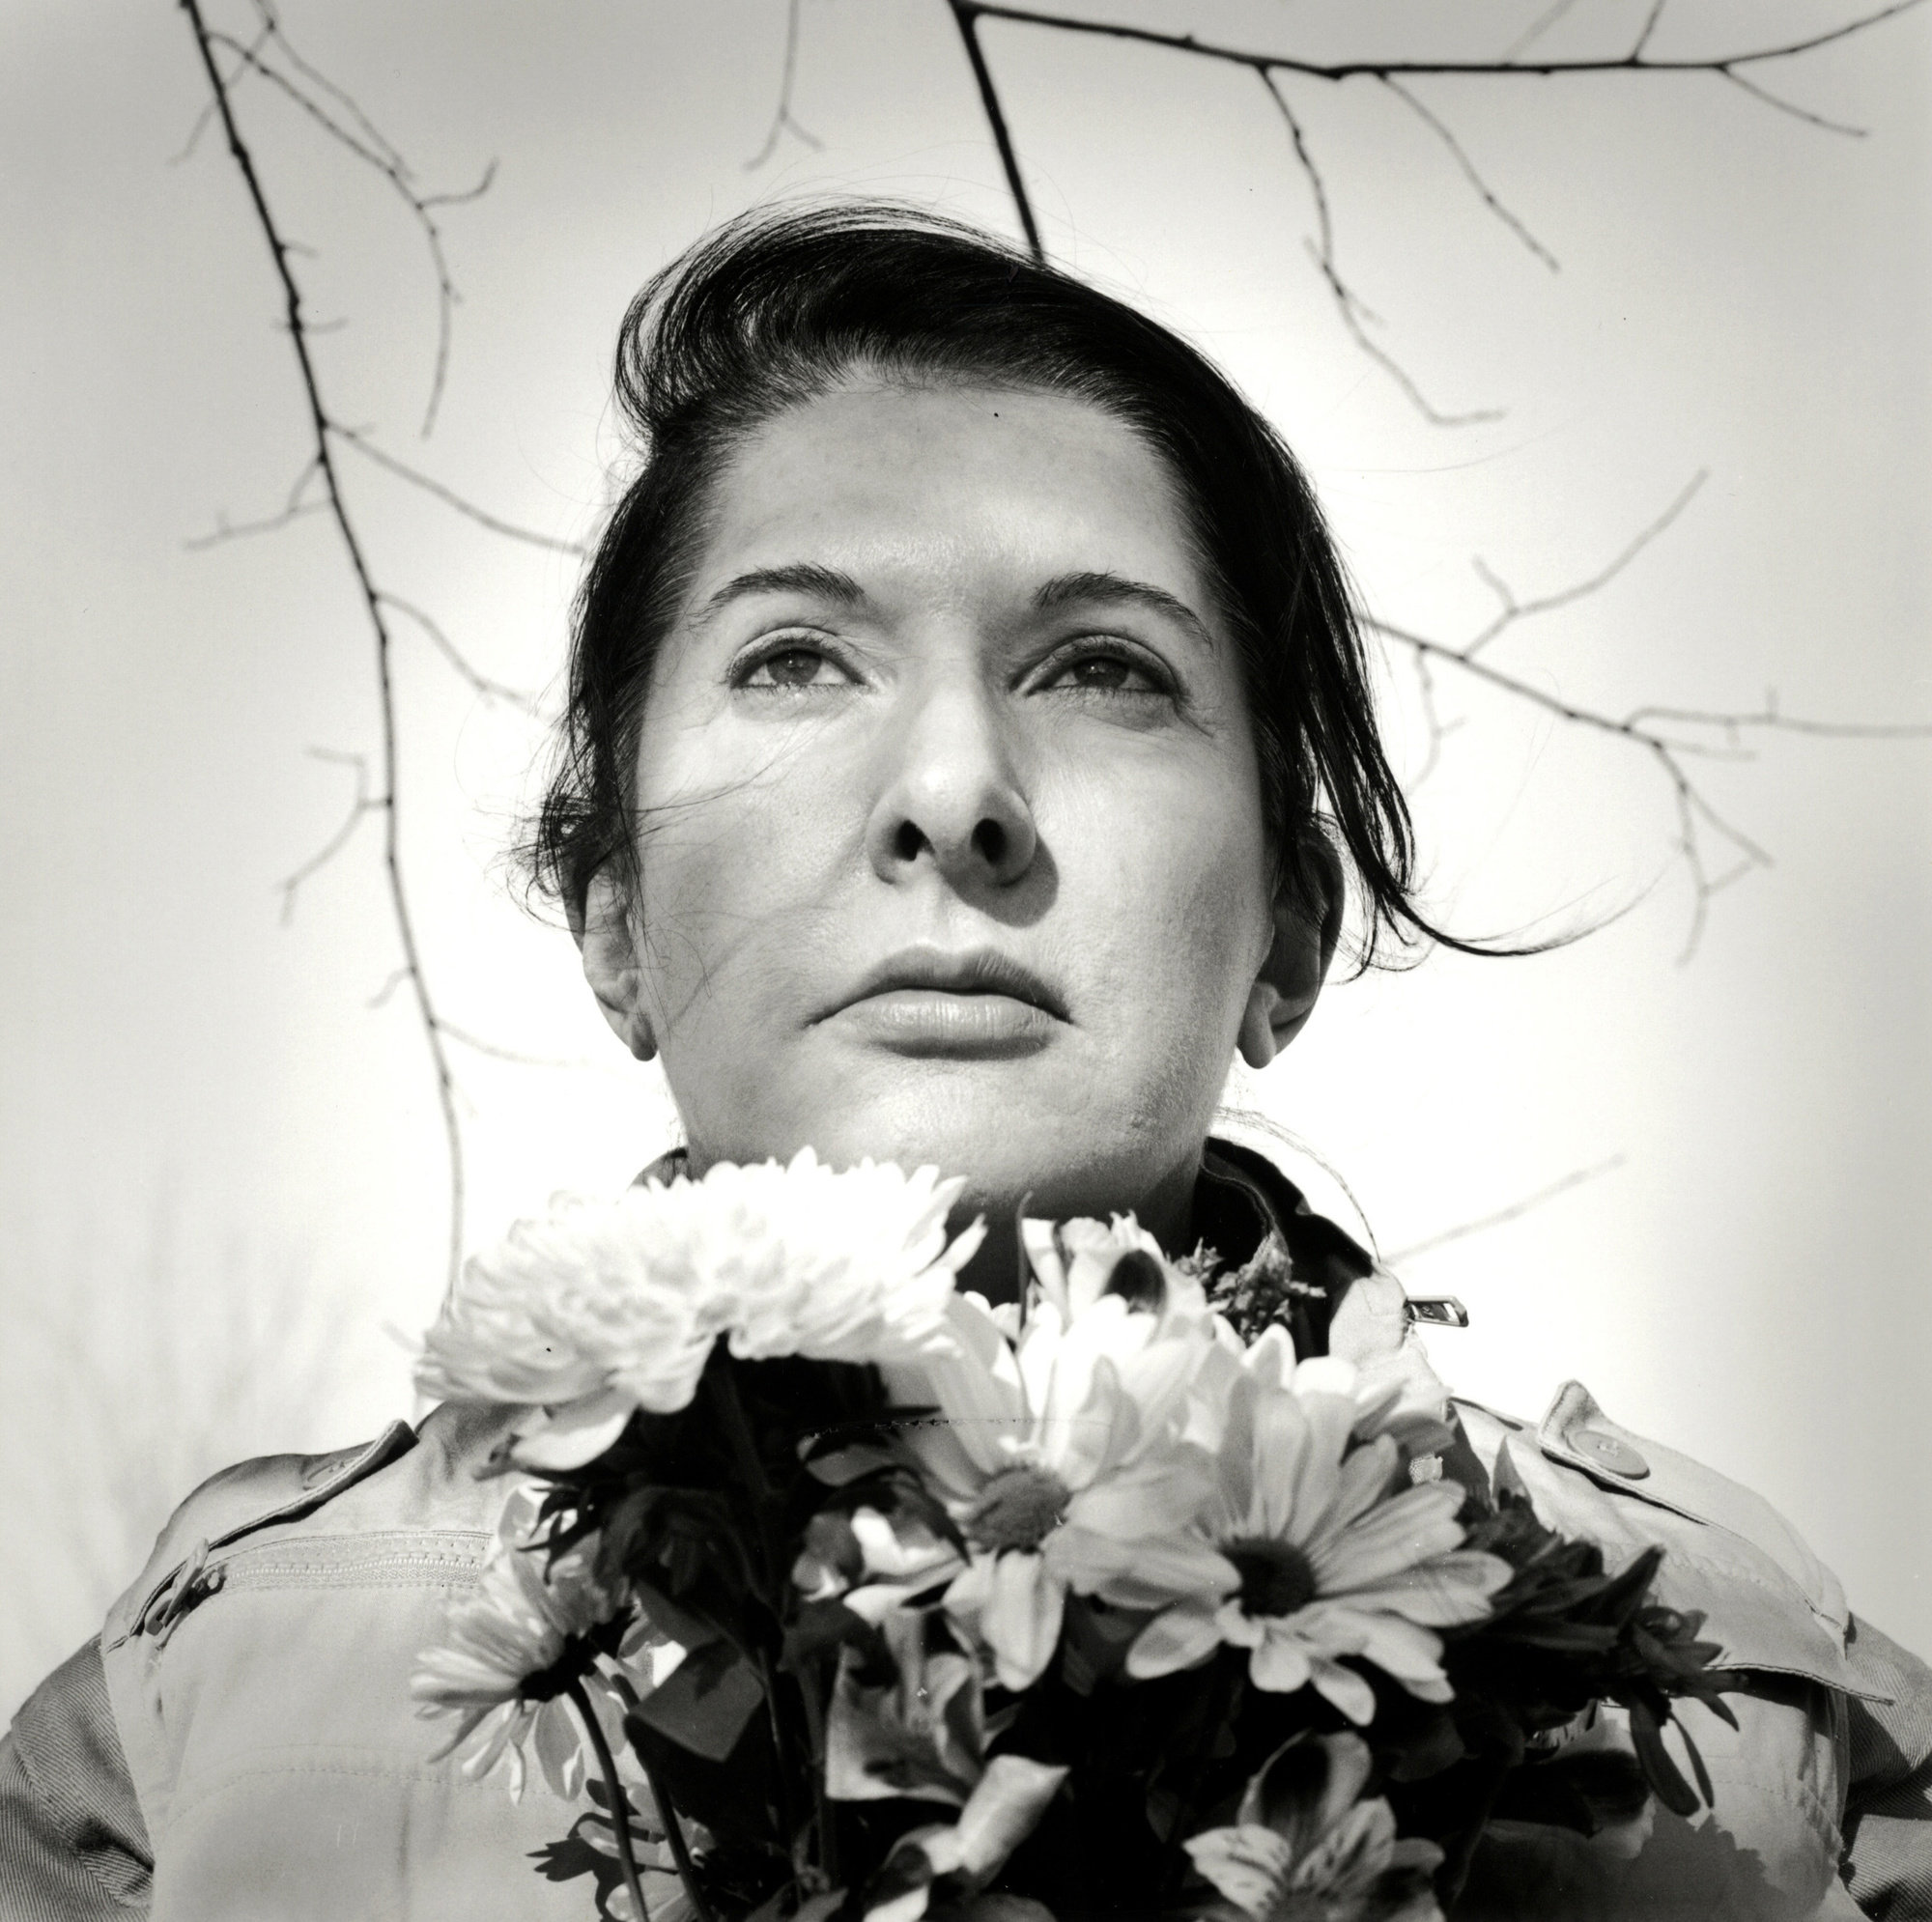 Marina Abramović. Portrait with Flowers, 2009